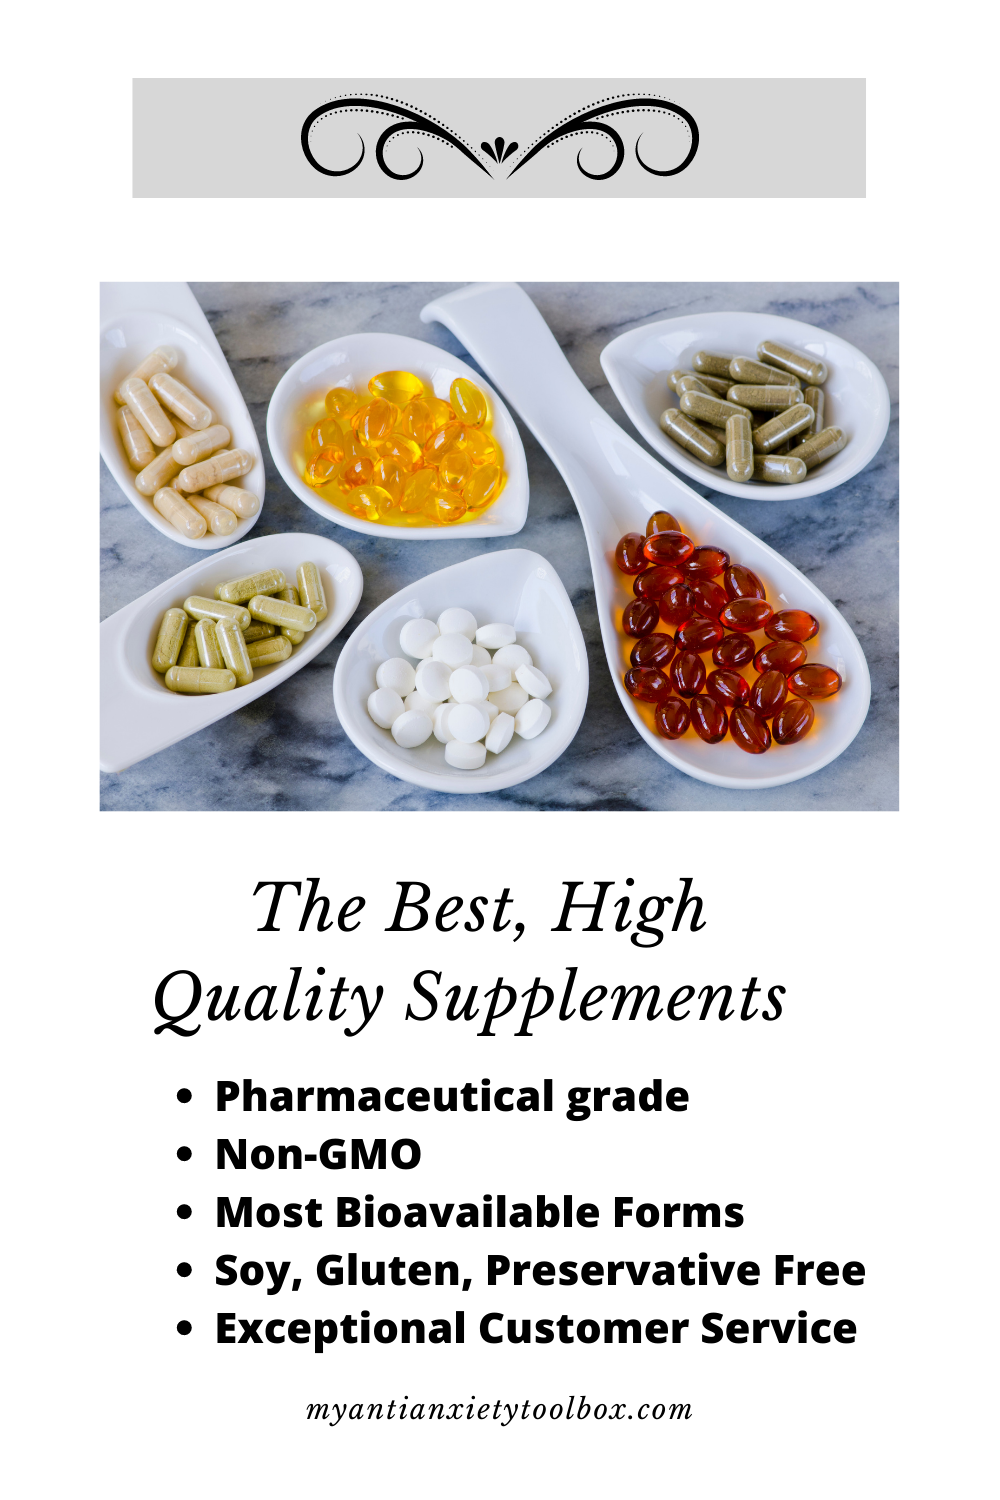 High Quality Physician Formulated Supplements. Numerous product video explanations and free e-books including recipe books and Leaky gut, SIBO, Candida, Thyroid and Autoimmune e-books. A true Wealth of Information in a beautiful, easy to navigate website! Visit now to get your free resources!